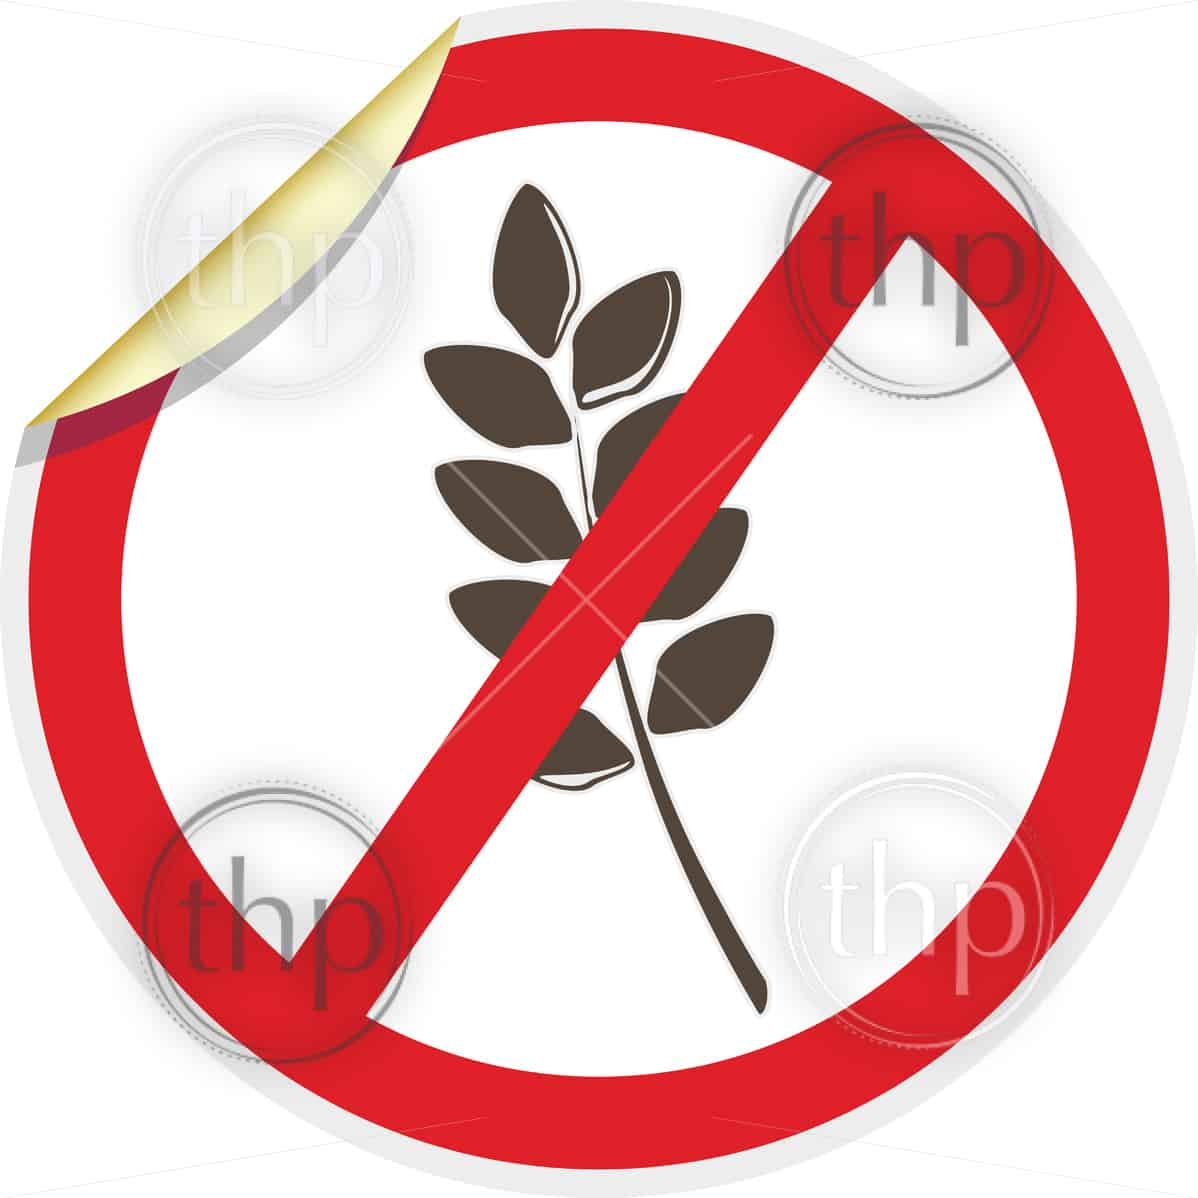 Gluten free icon in 3D style for food allergy concept